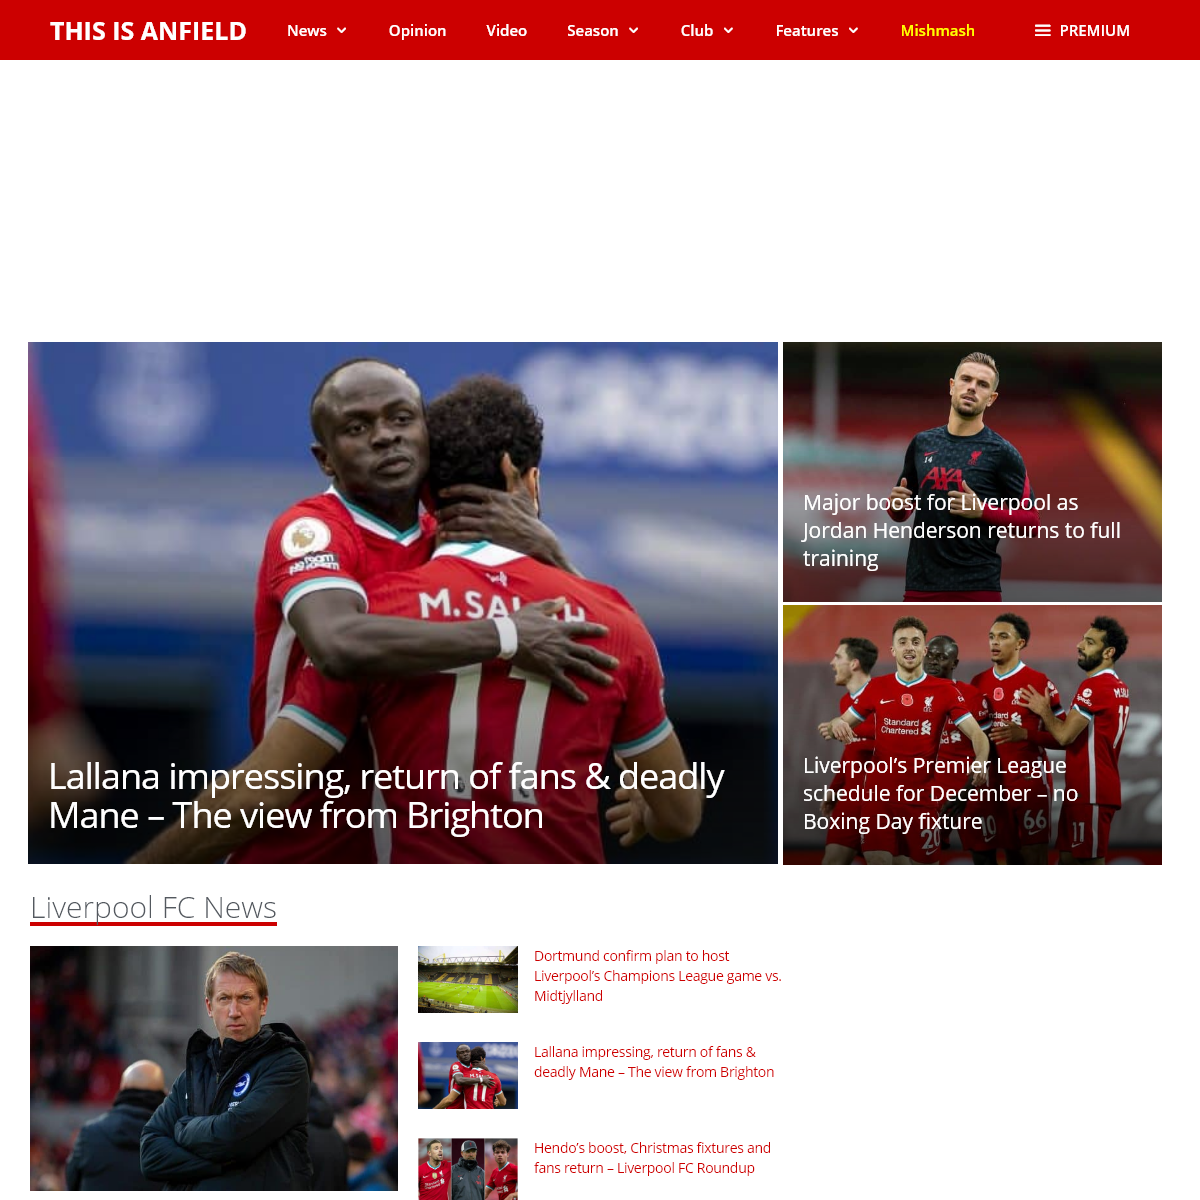 Liverpool FC News & LFC transfer rumours - This Is Anfield